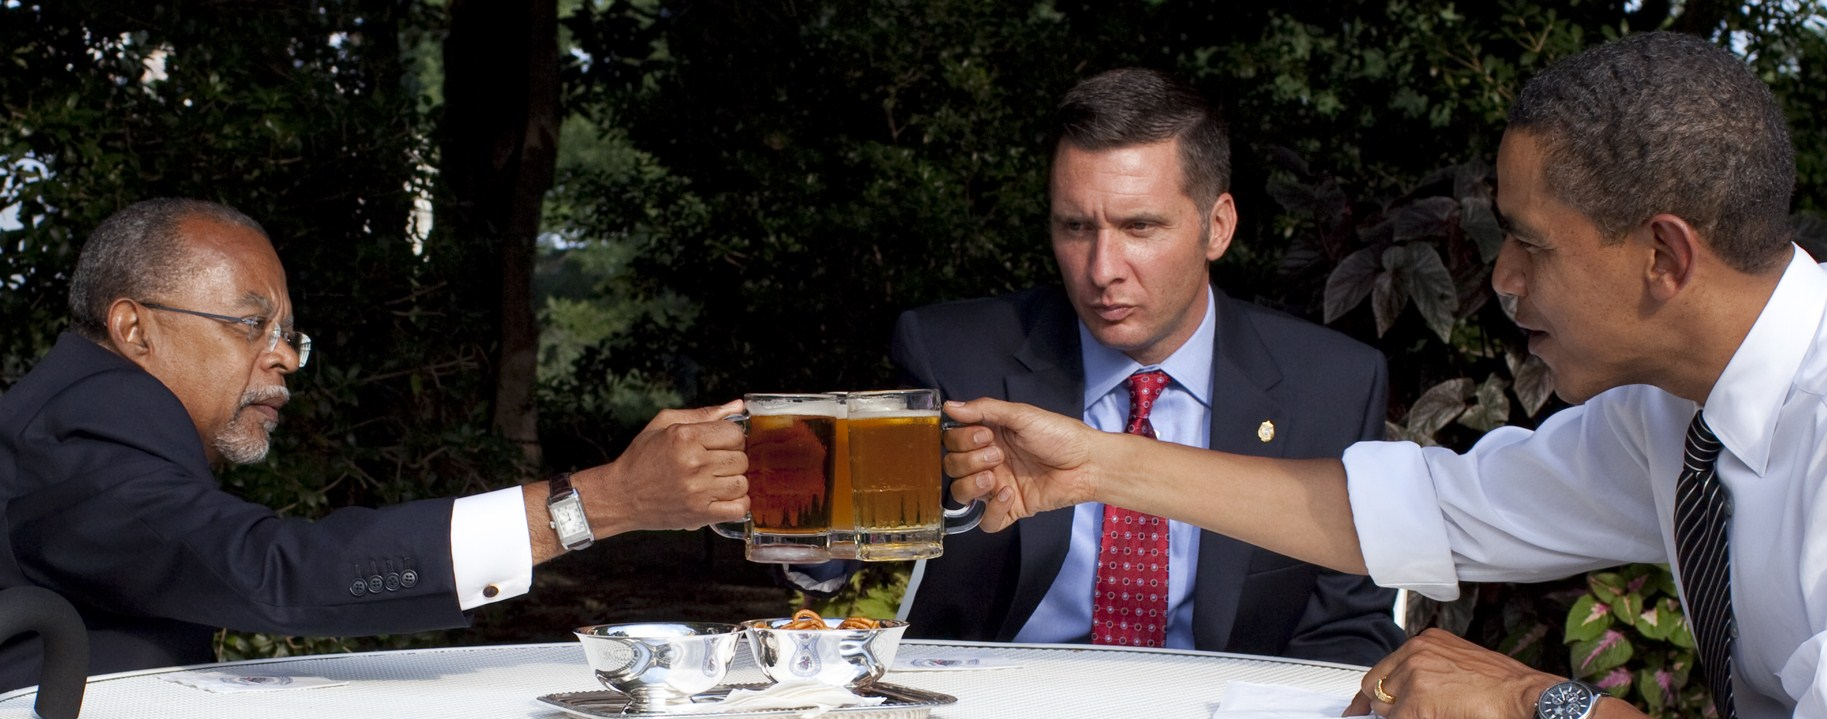 Obama, Gates and Crowley drink to a false sense of improved race relations while the economy disintegrates and Obamas poll numbers plummet.